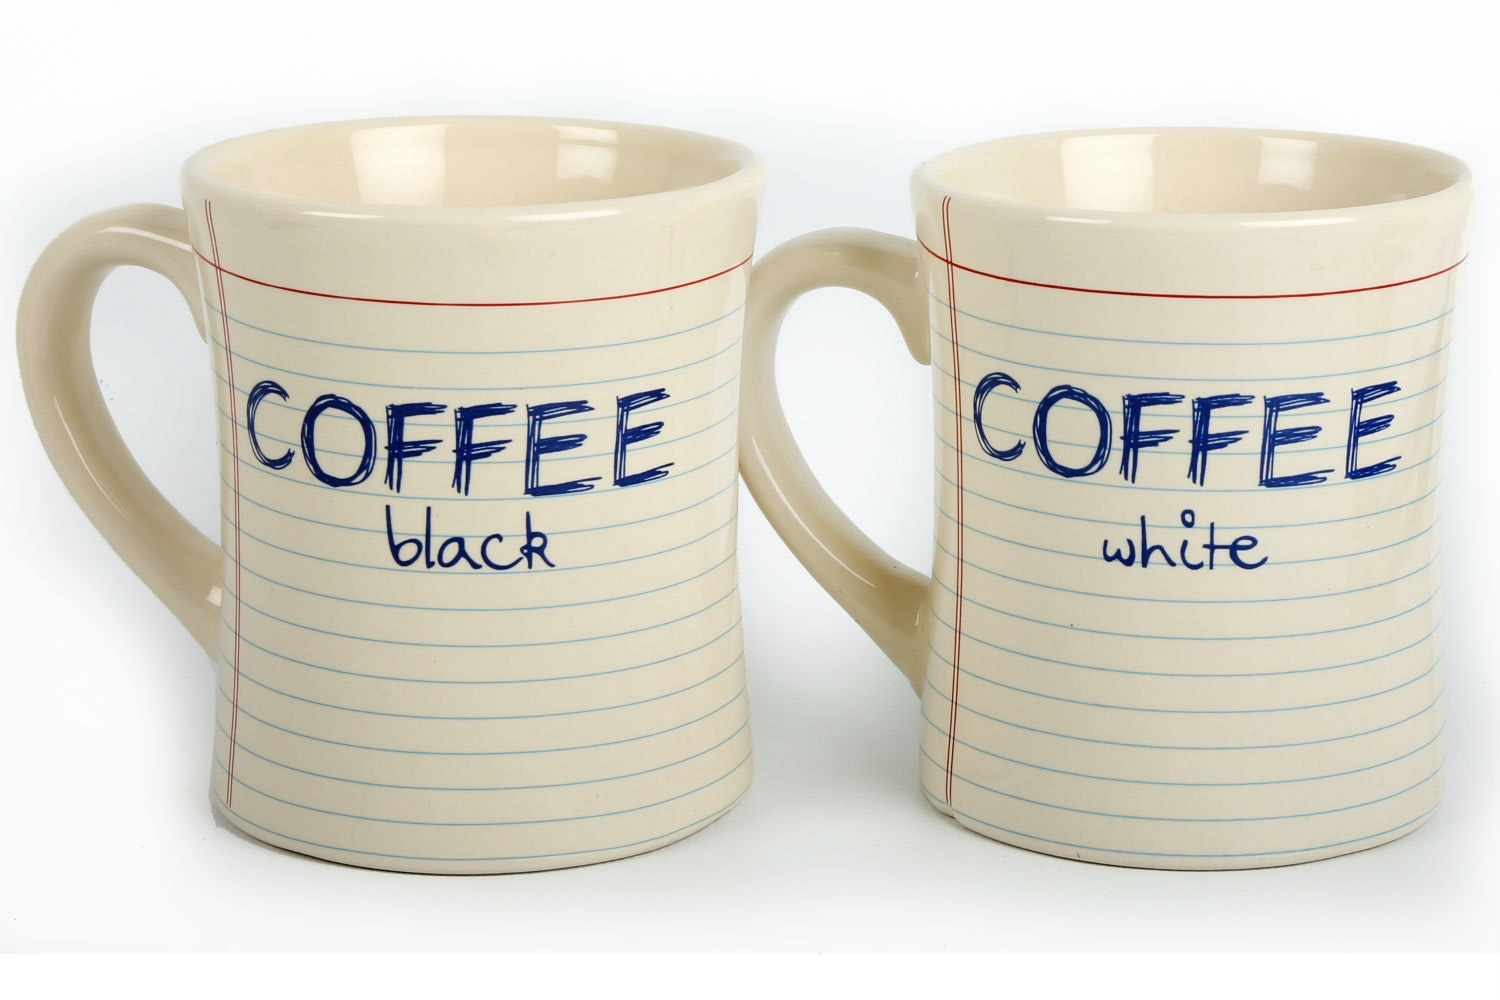 Temerity jones Notebook Coffee Mug 2 Astd